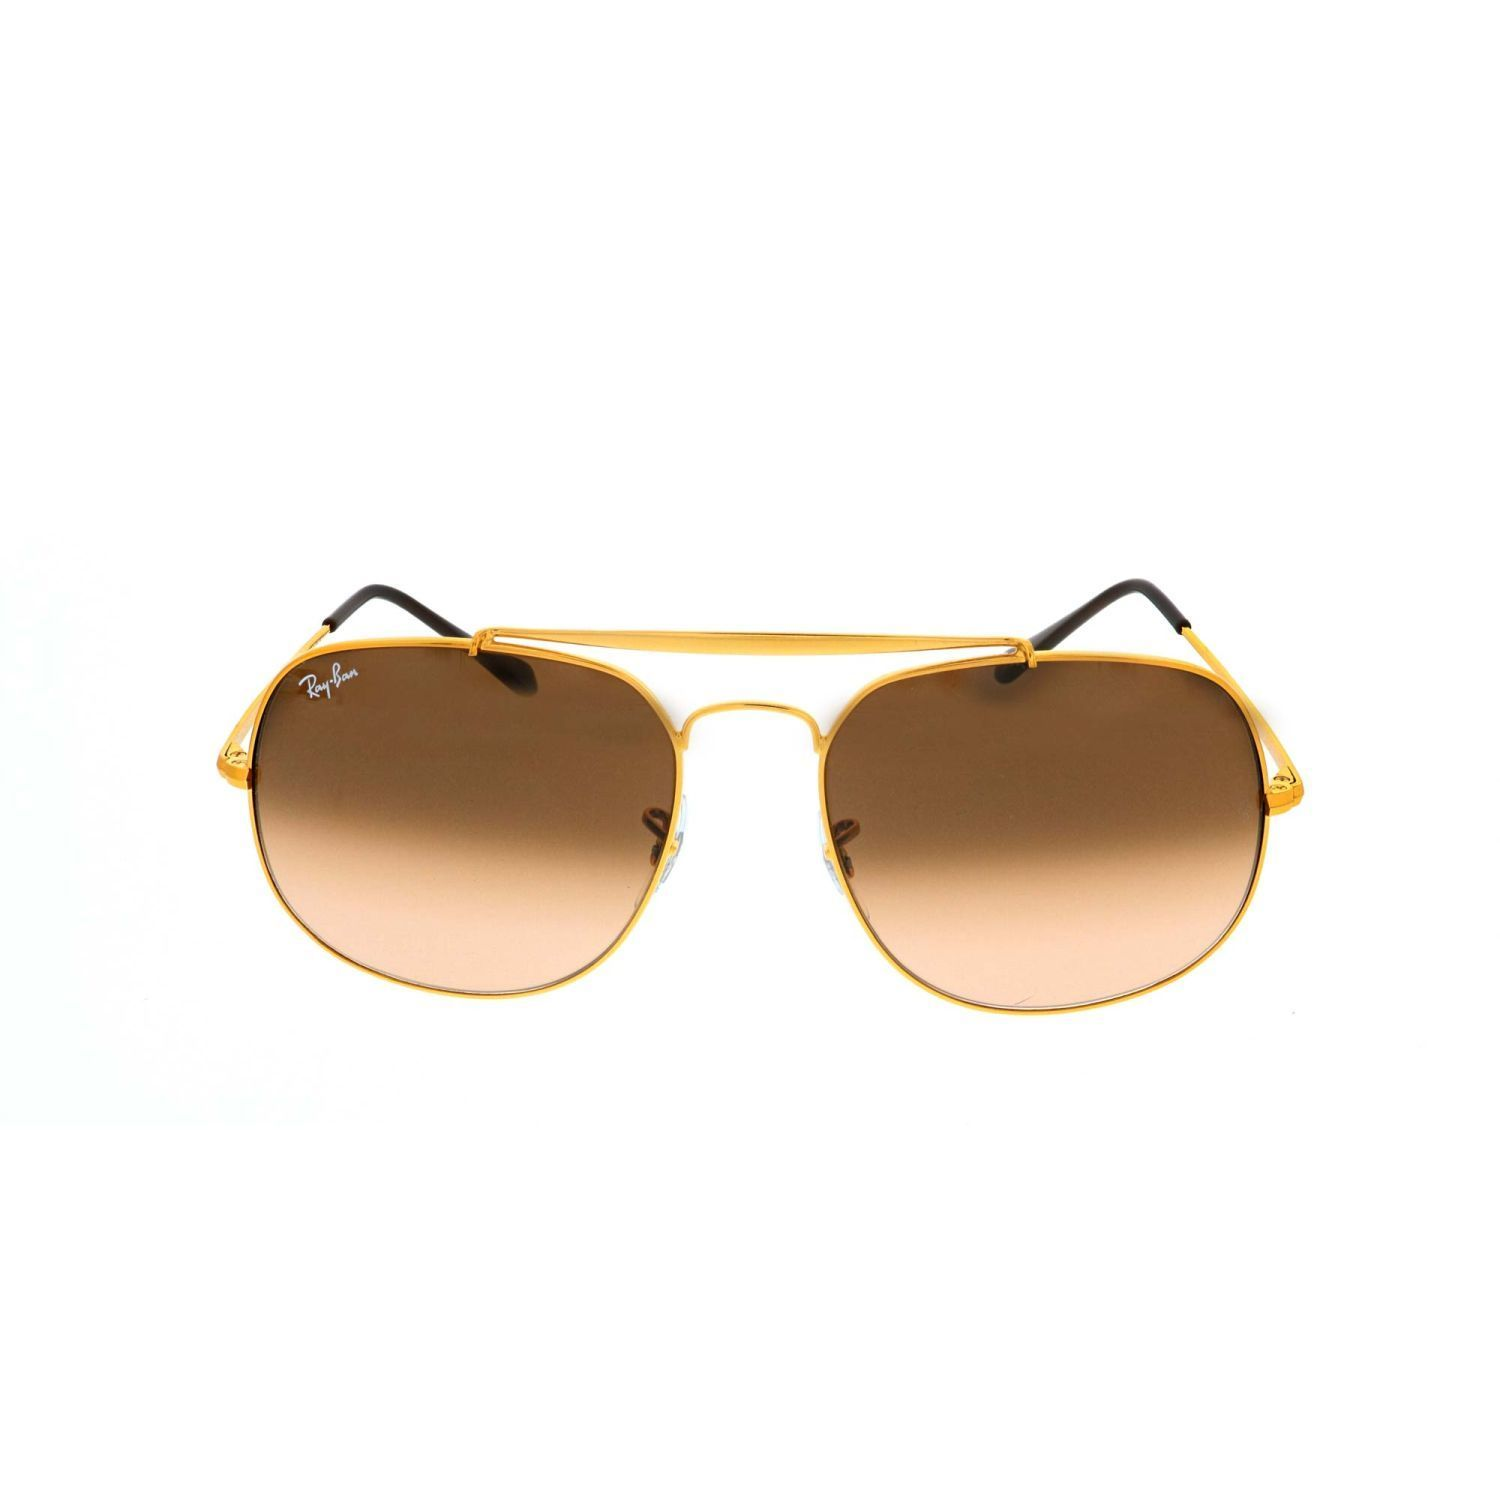 1d305afcb63 Ray-Ban RB3561-9001A5 Gradient Sunglasses Gold Frame Pink brown Lens